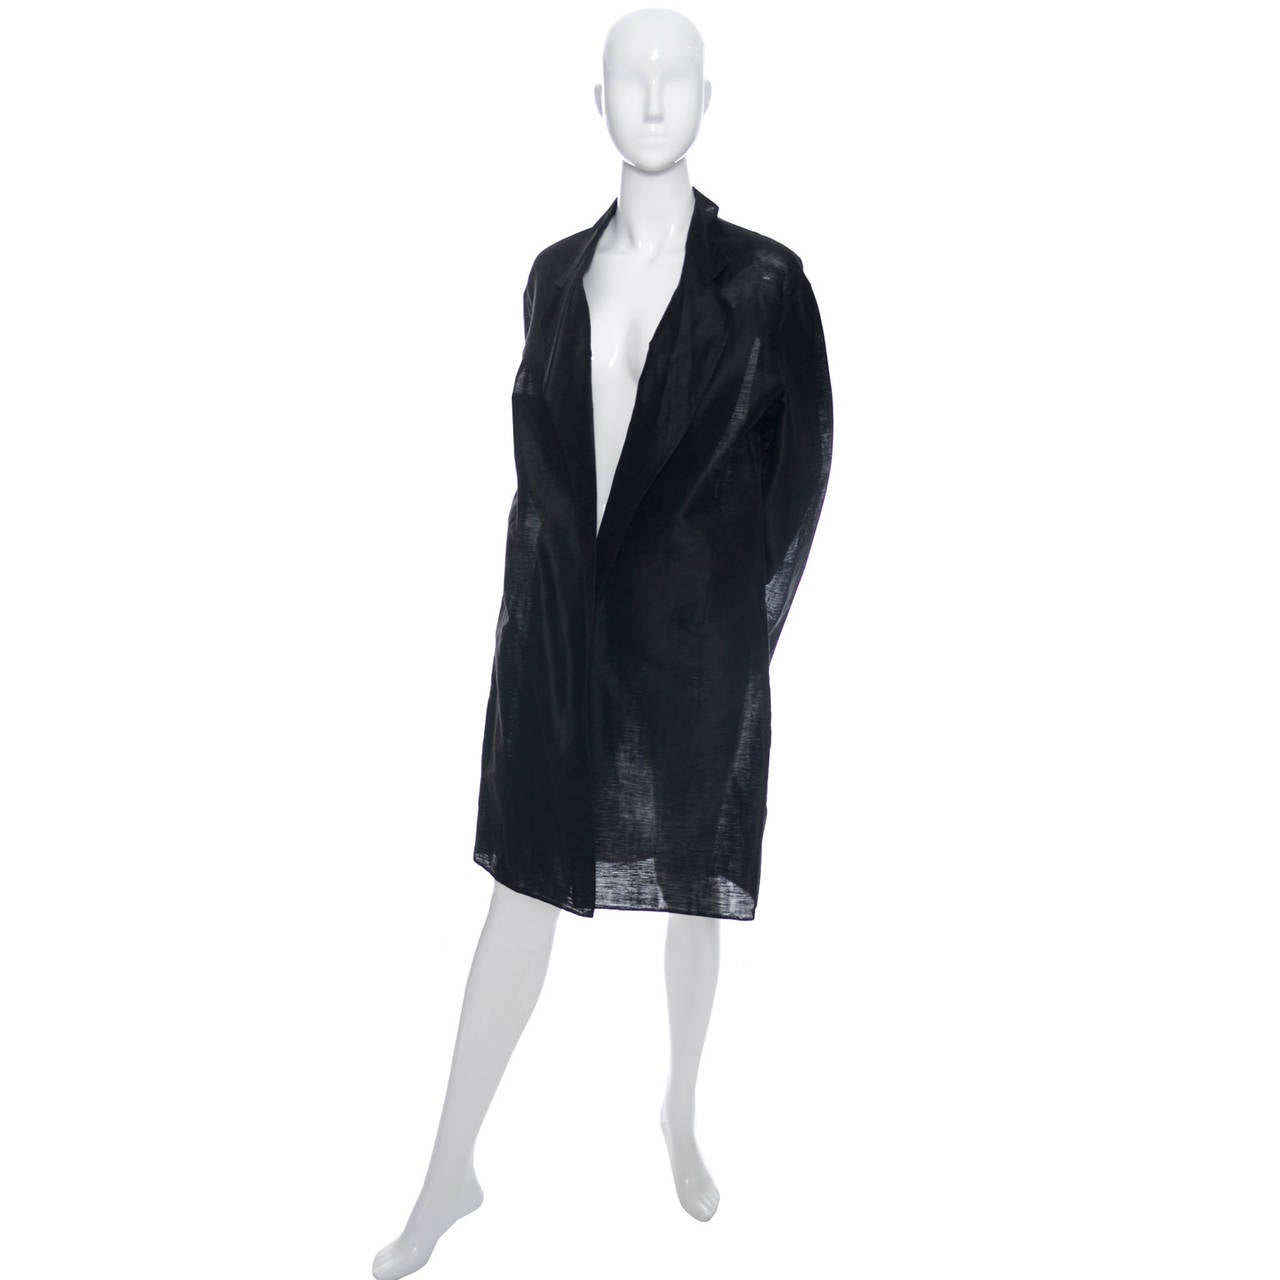 Gorgeous vintage Donna Karan black semi sheer linen organza evening coat with open front. This is such a great essential basic jacket to have to throw over a cocktail dress or wear with a pair of silk pants. It was hard to photograph this coat and